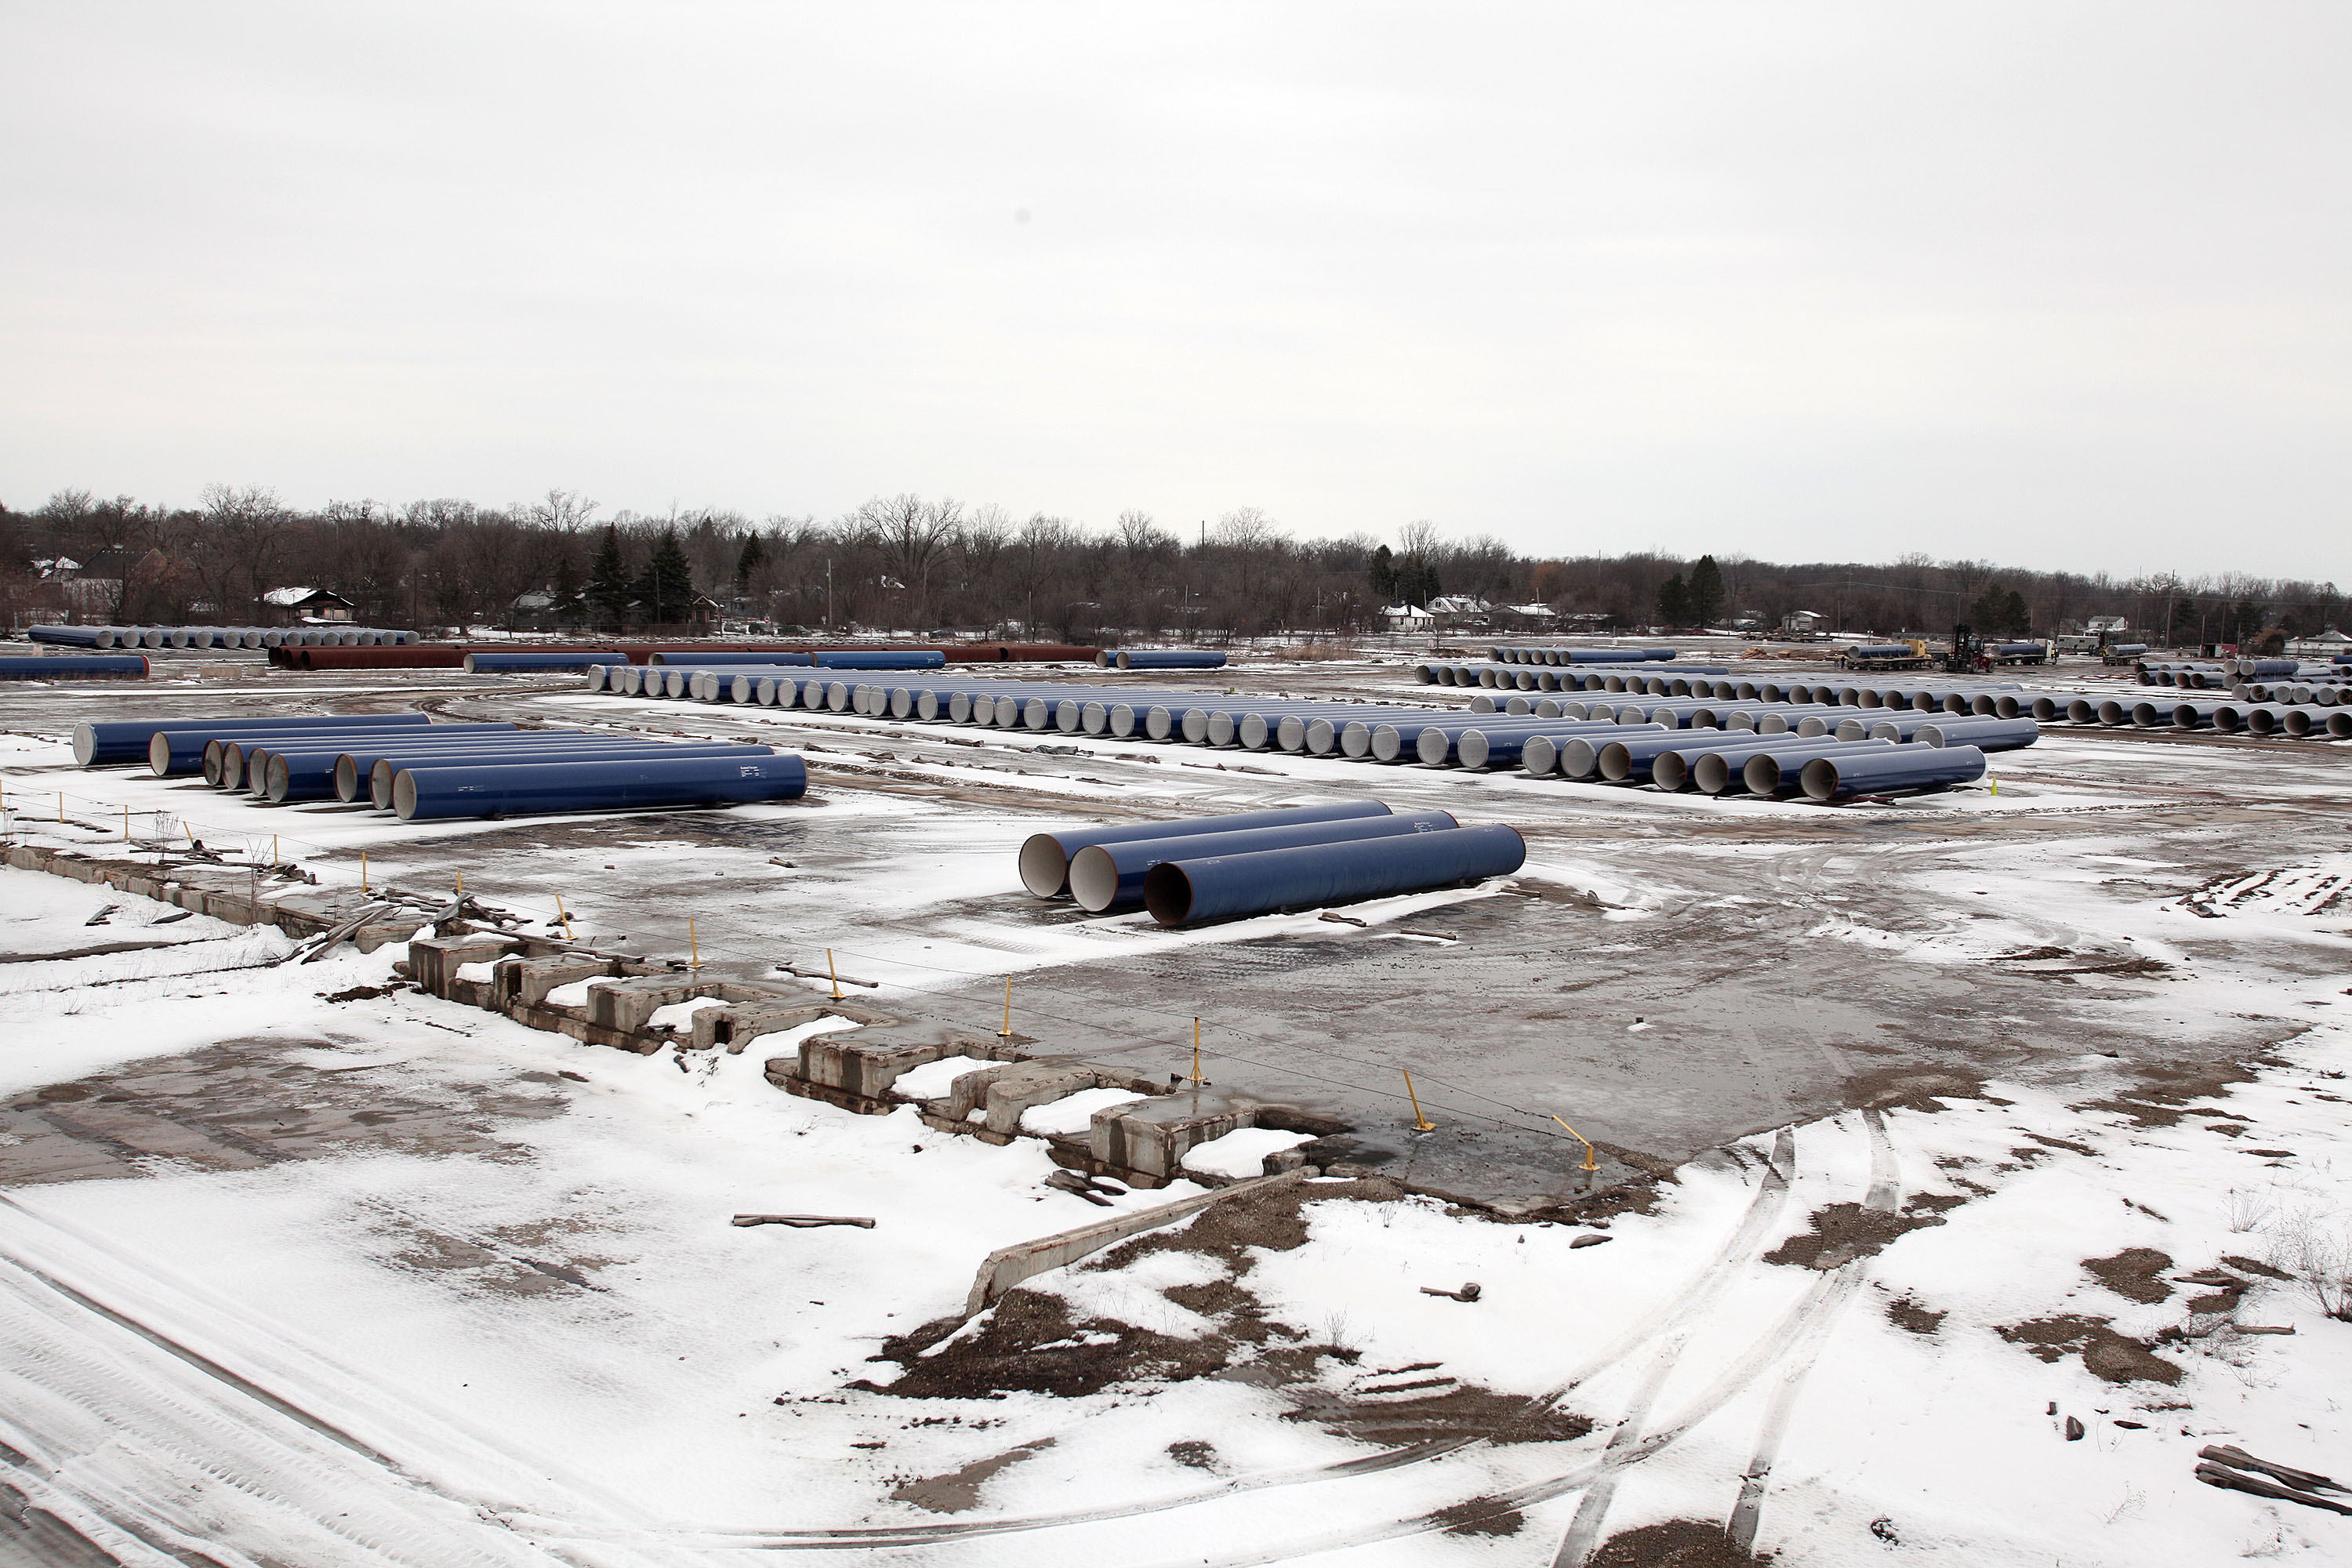 New water pipes awaiting installation are shown along the route of a national mile-long march, which was held to highlight the push for clean water in Flint, Mich., on Feb. 19, 2016.